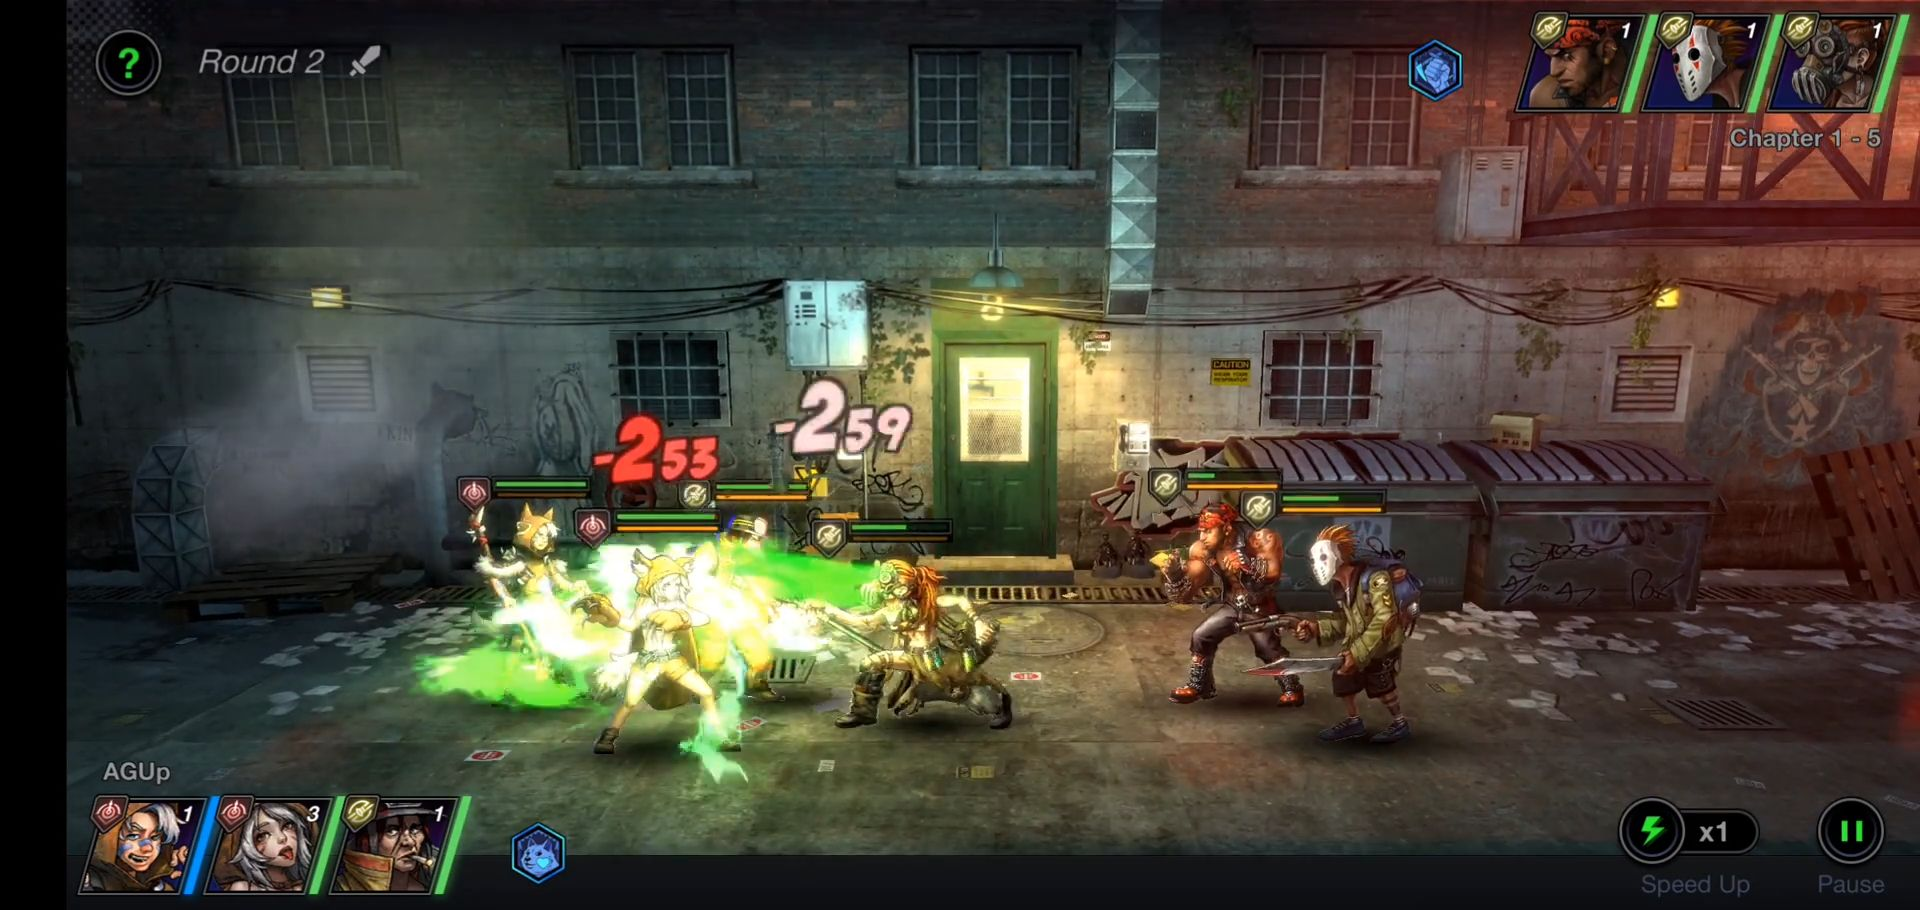 Battle Night: Cyber Squad-Idle RPG para Android